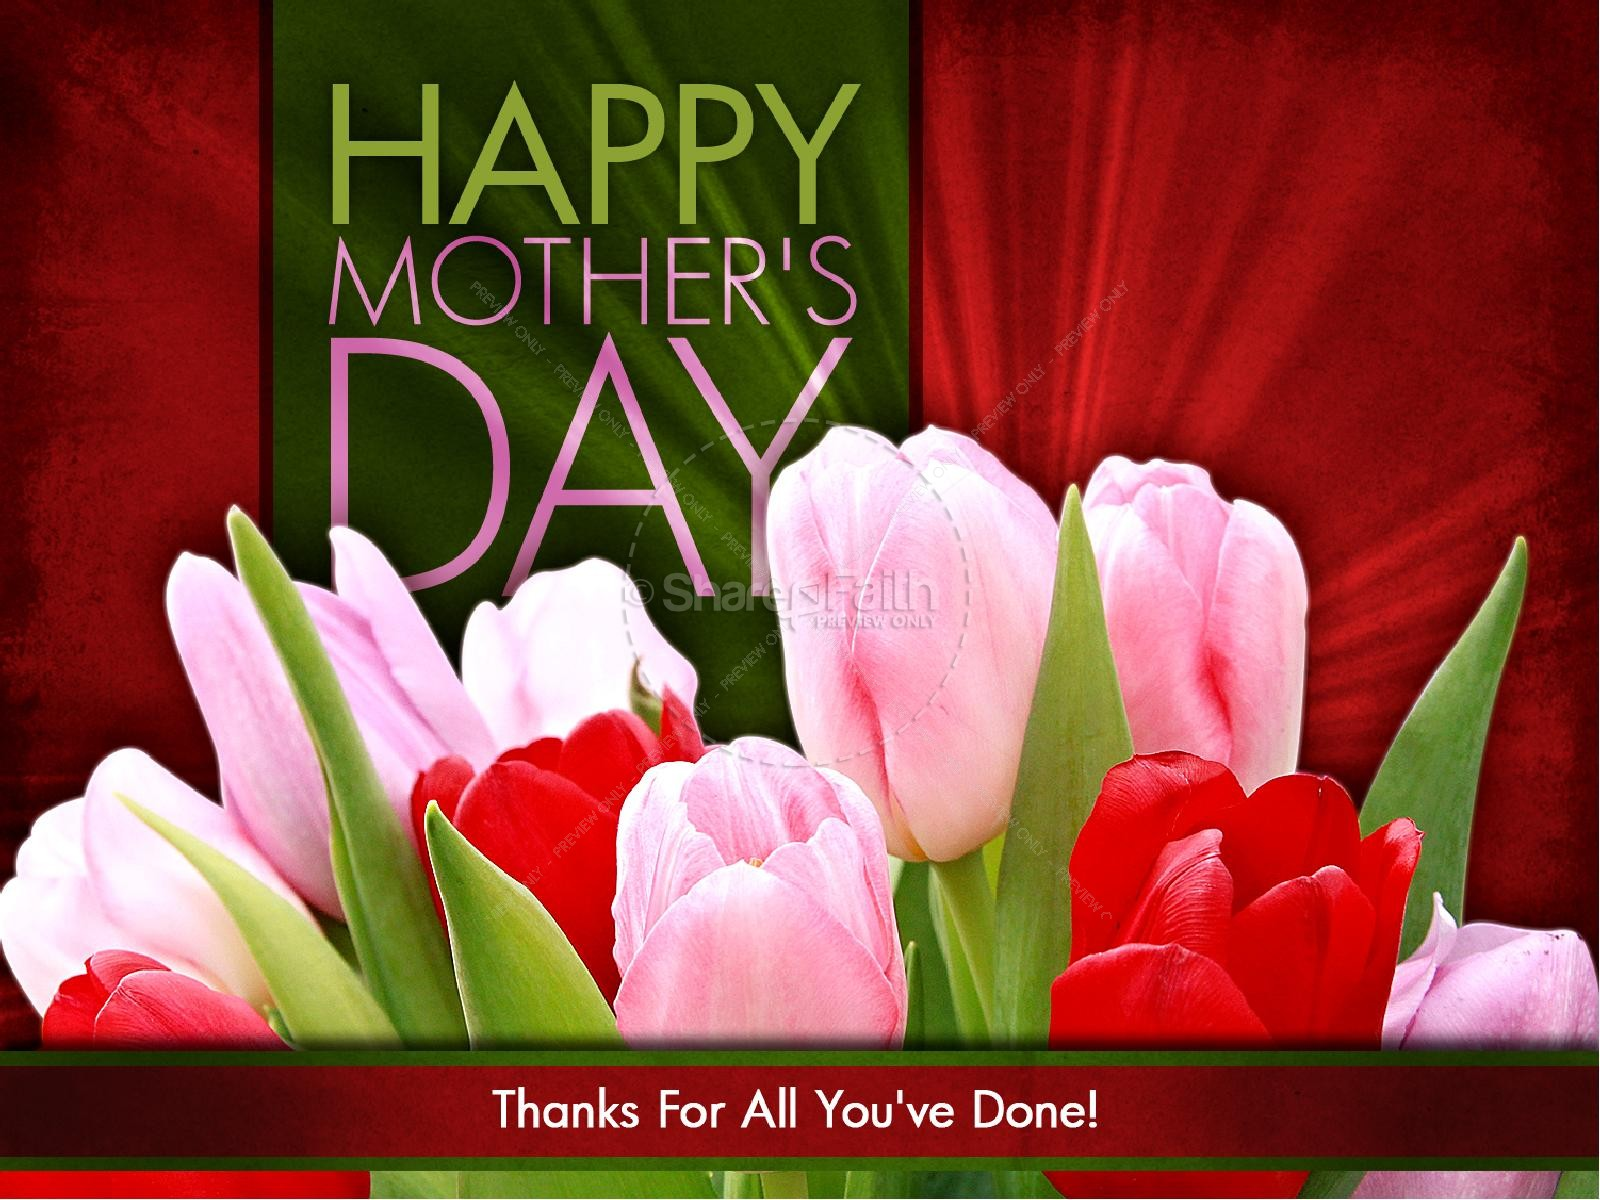 Happy Mother's Day Template PowerPoint | slide 1